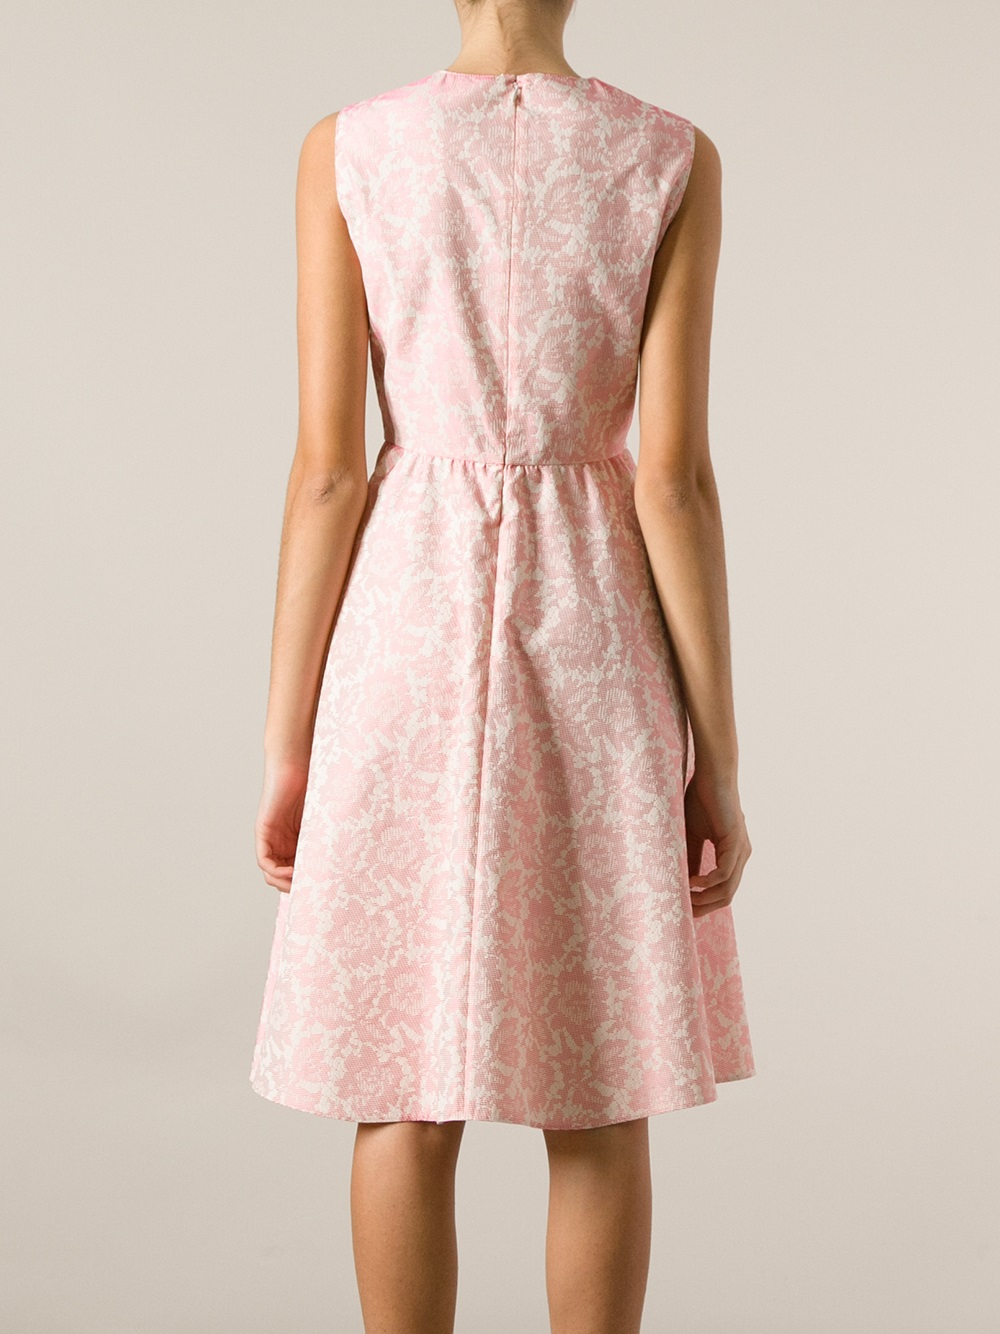 Lyst Valentino Floral Jacquard Dress In Pink